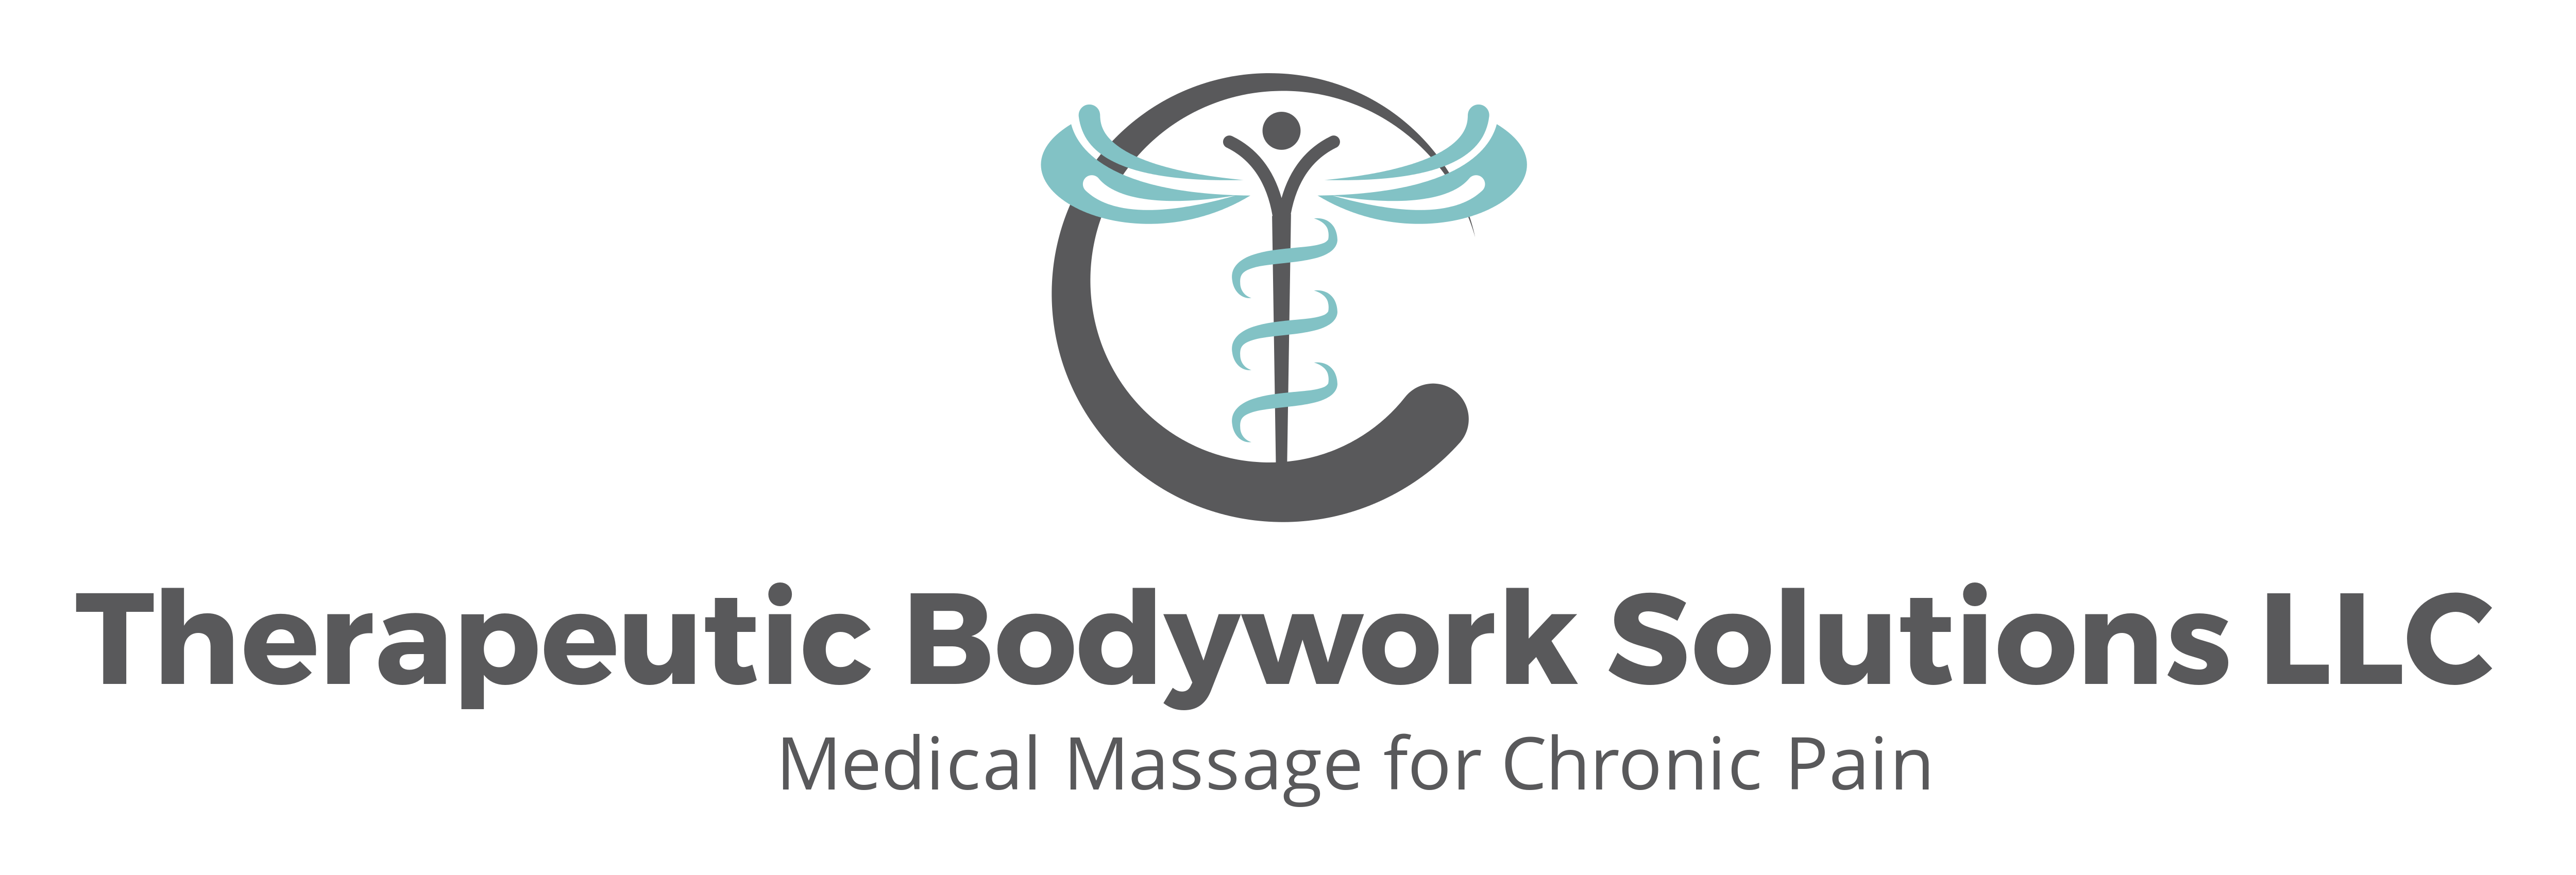 Therapeutic Bodywork Solutions